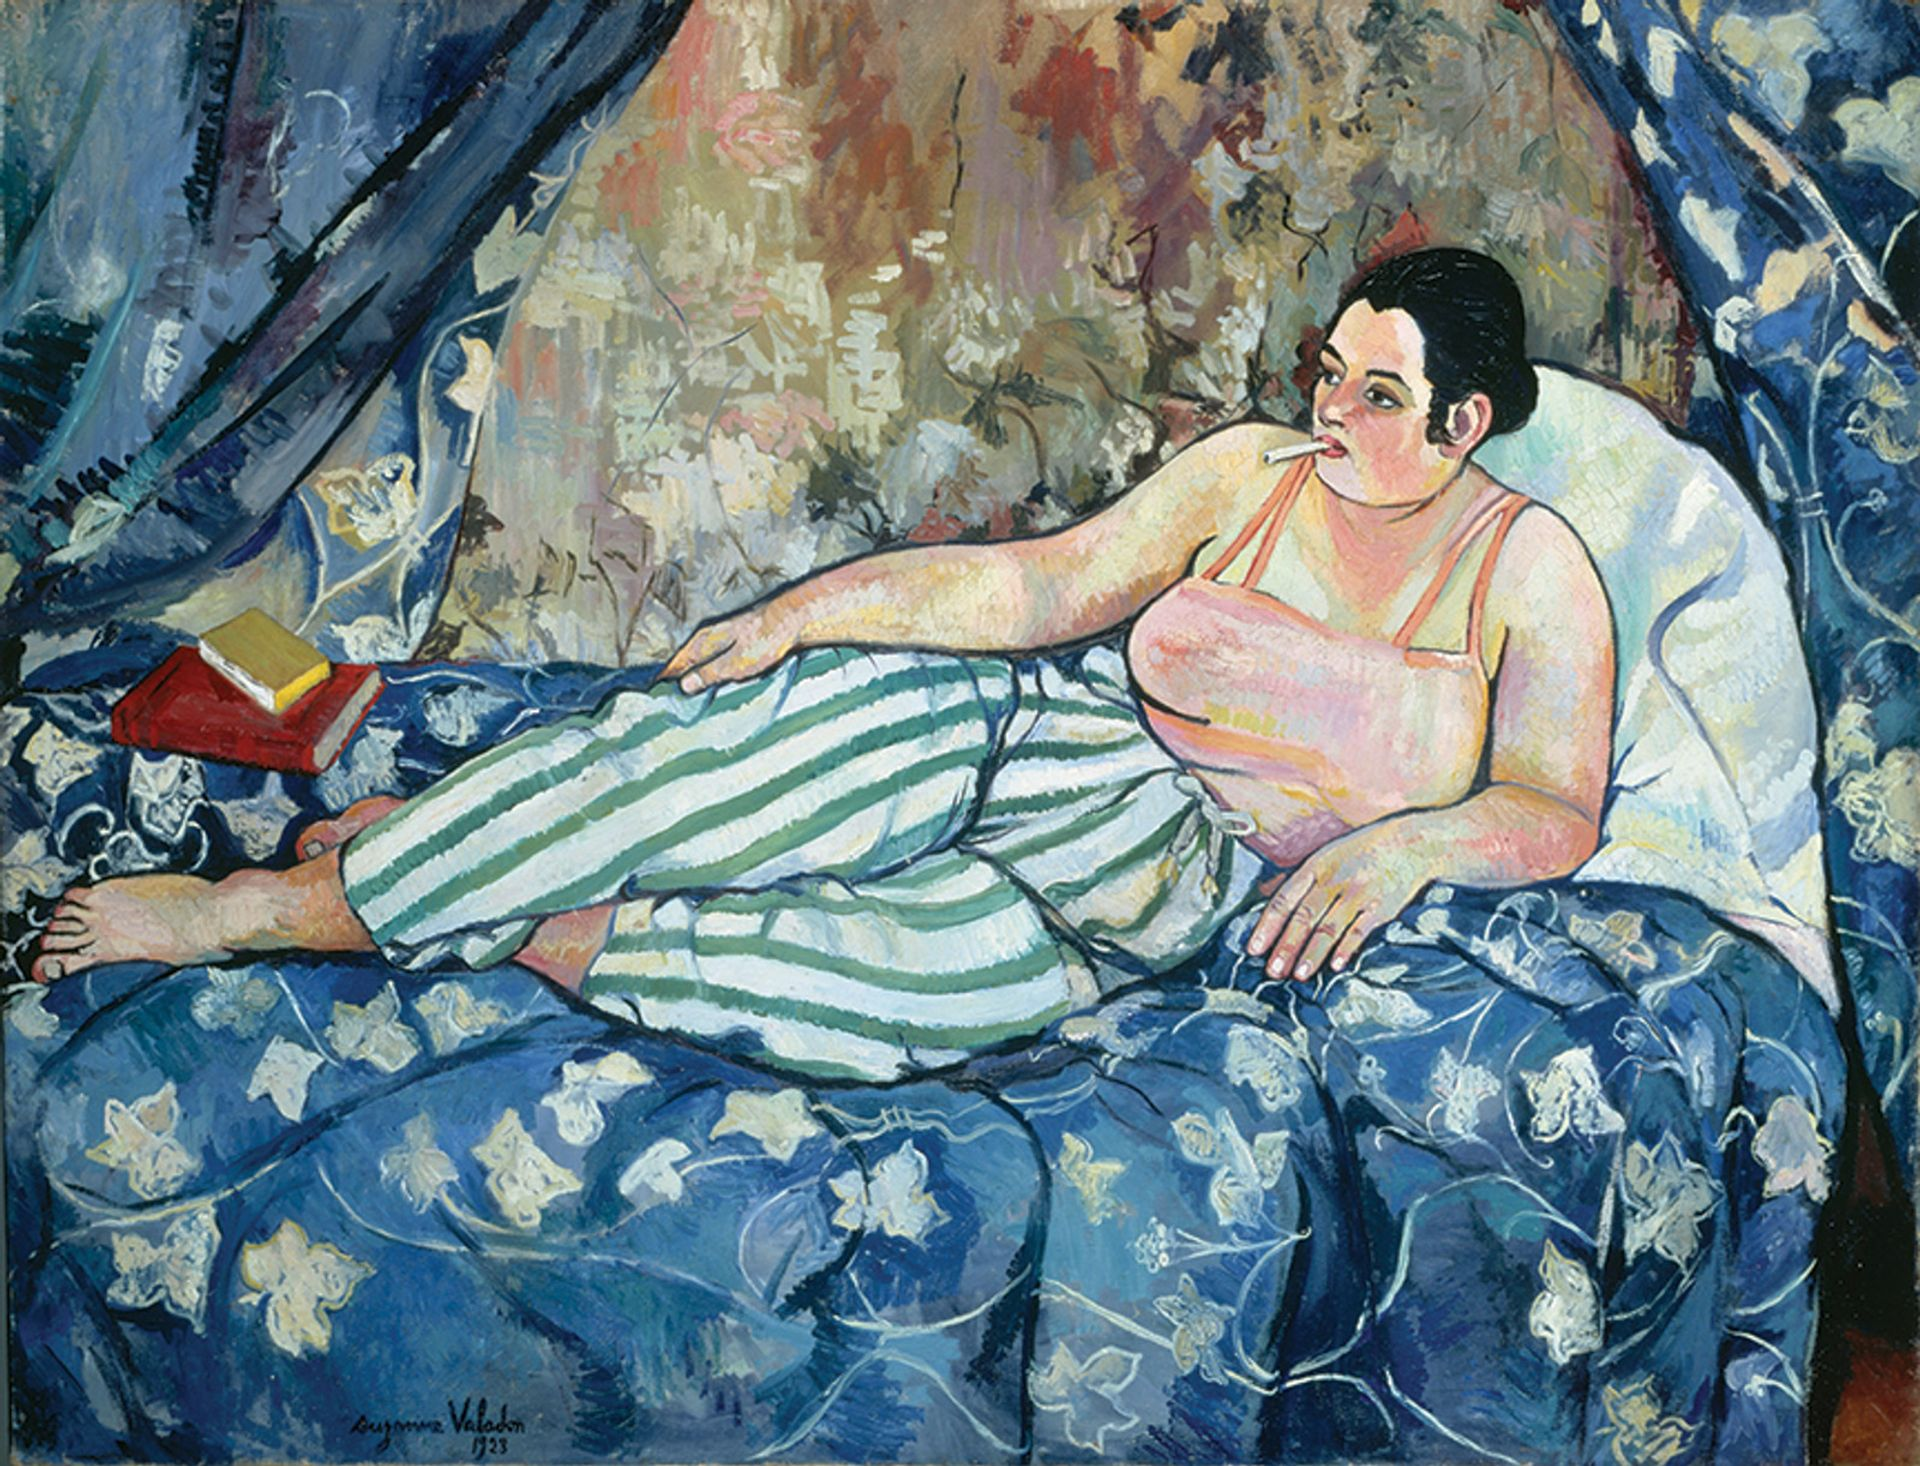 In The Blue Room (1923), Valadon replaces the traditional female nudewith a woman wearing stripey trousers, a cigarette hanging from her mouth Photo: Jacqueline Hyde; © Collection Centre Pompidou; © 2021 ARS, New York/Image © CNAC/MNAM; Dist. RMN-Grand Palais/Art Resource, NY